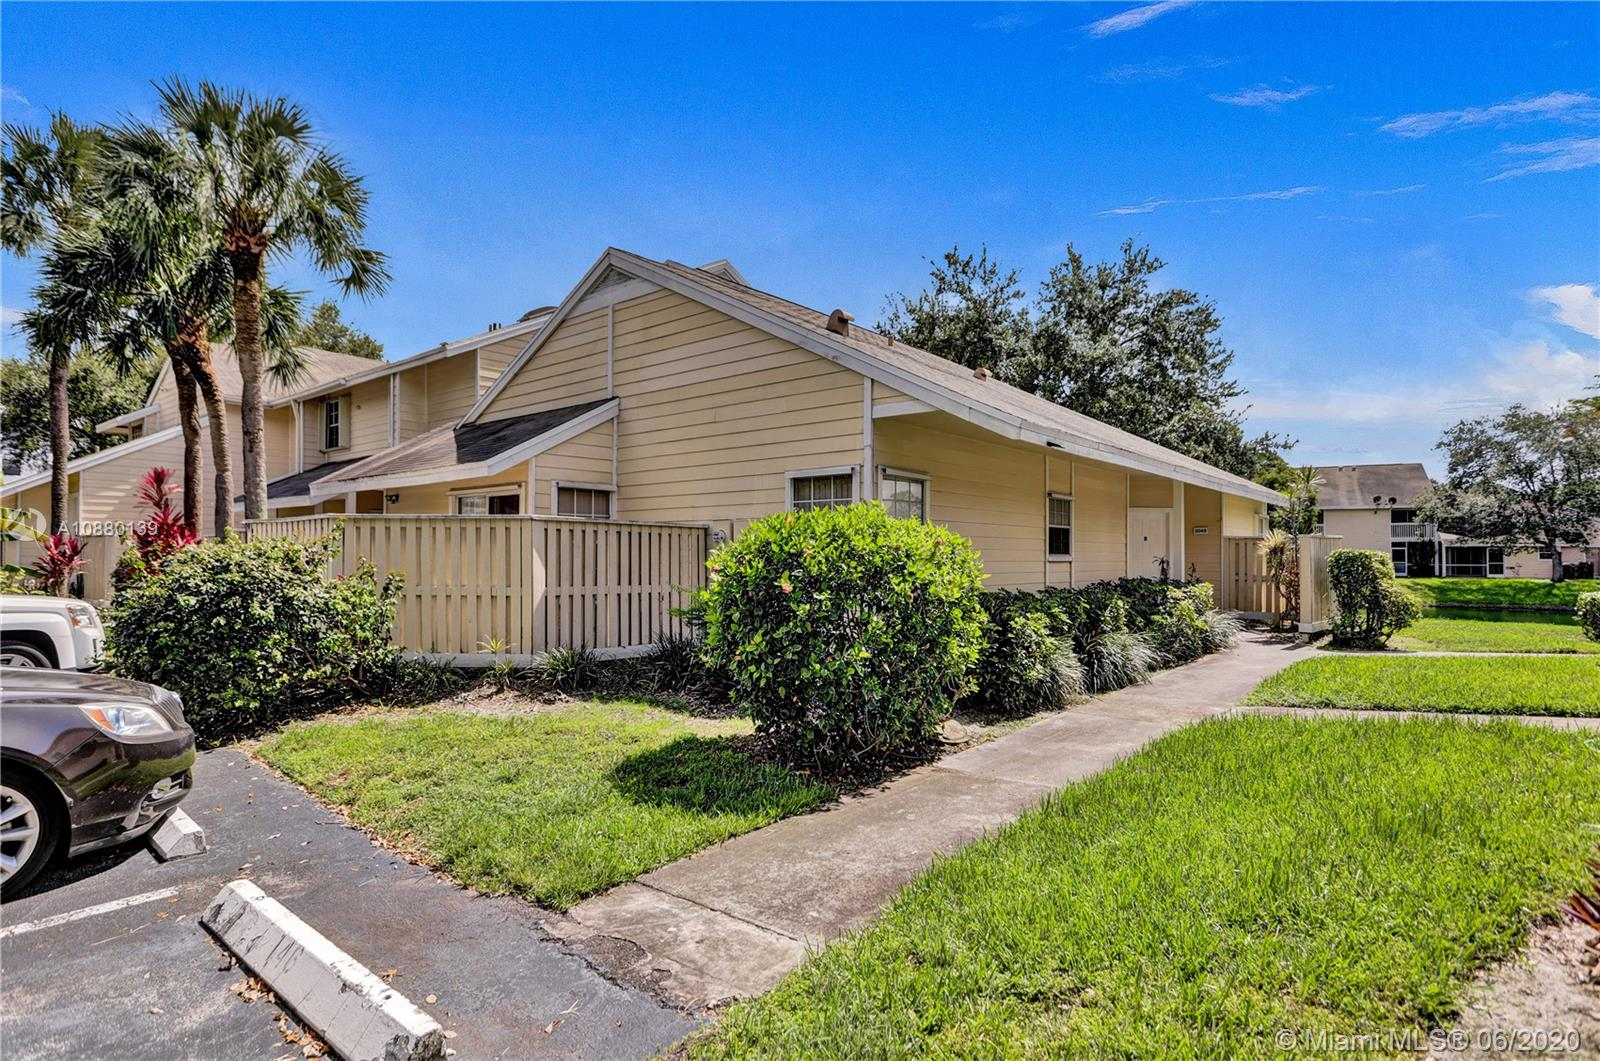 BEAUTIFUL 2/2 WITH A LOFT. GORGEOUS LAKEVIEW, REMODELED KITCHEN WITH STAINLESS STEAL APPLIANCES AND REMODELED BATHROOMS WITH GRANITE COUNTERTOPS, NEW AC, NEW FLOORS- LAMINATE THROUGH OUT. CORNER UNIT ON THE WATER!